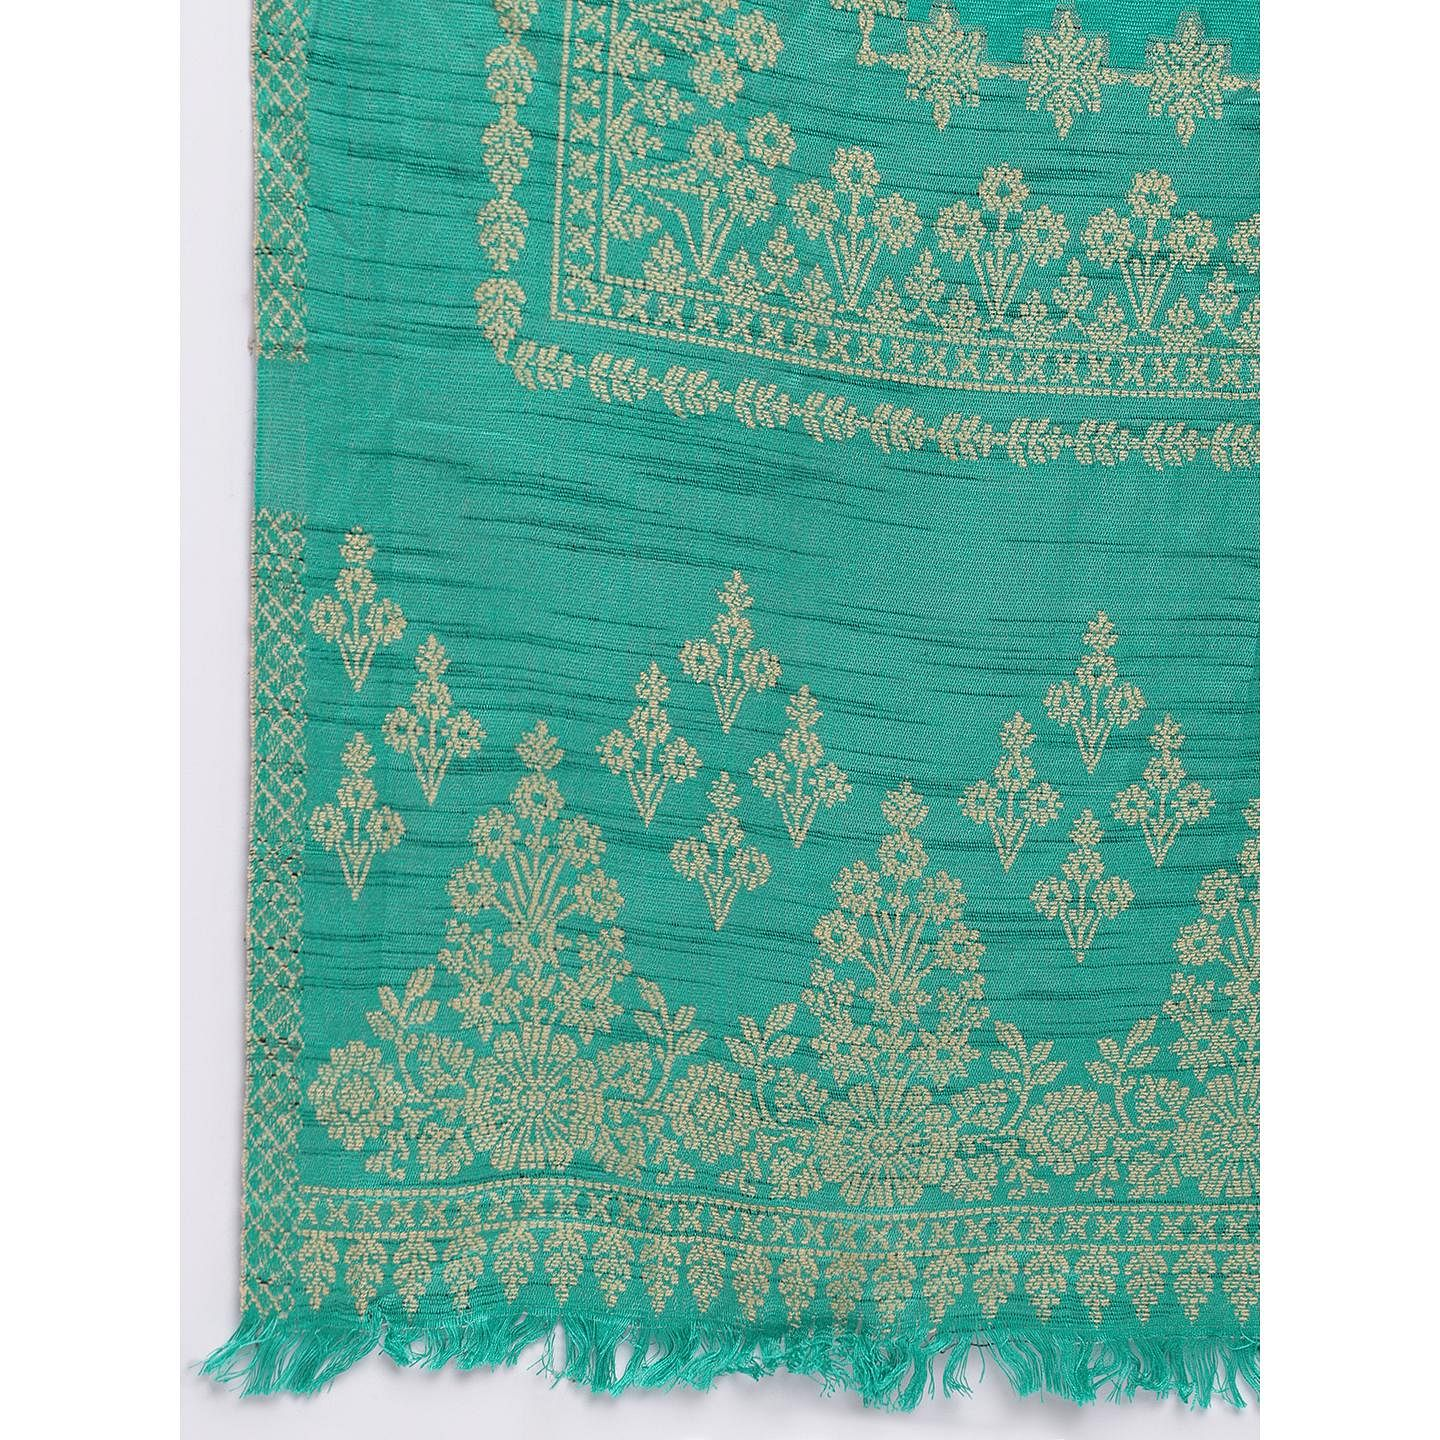 HK Colors Of Fashion - Sea Green Colored Khadi Look Woven Design Acrylic Wool Blend Dress Material